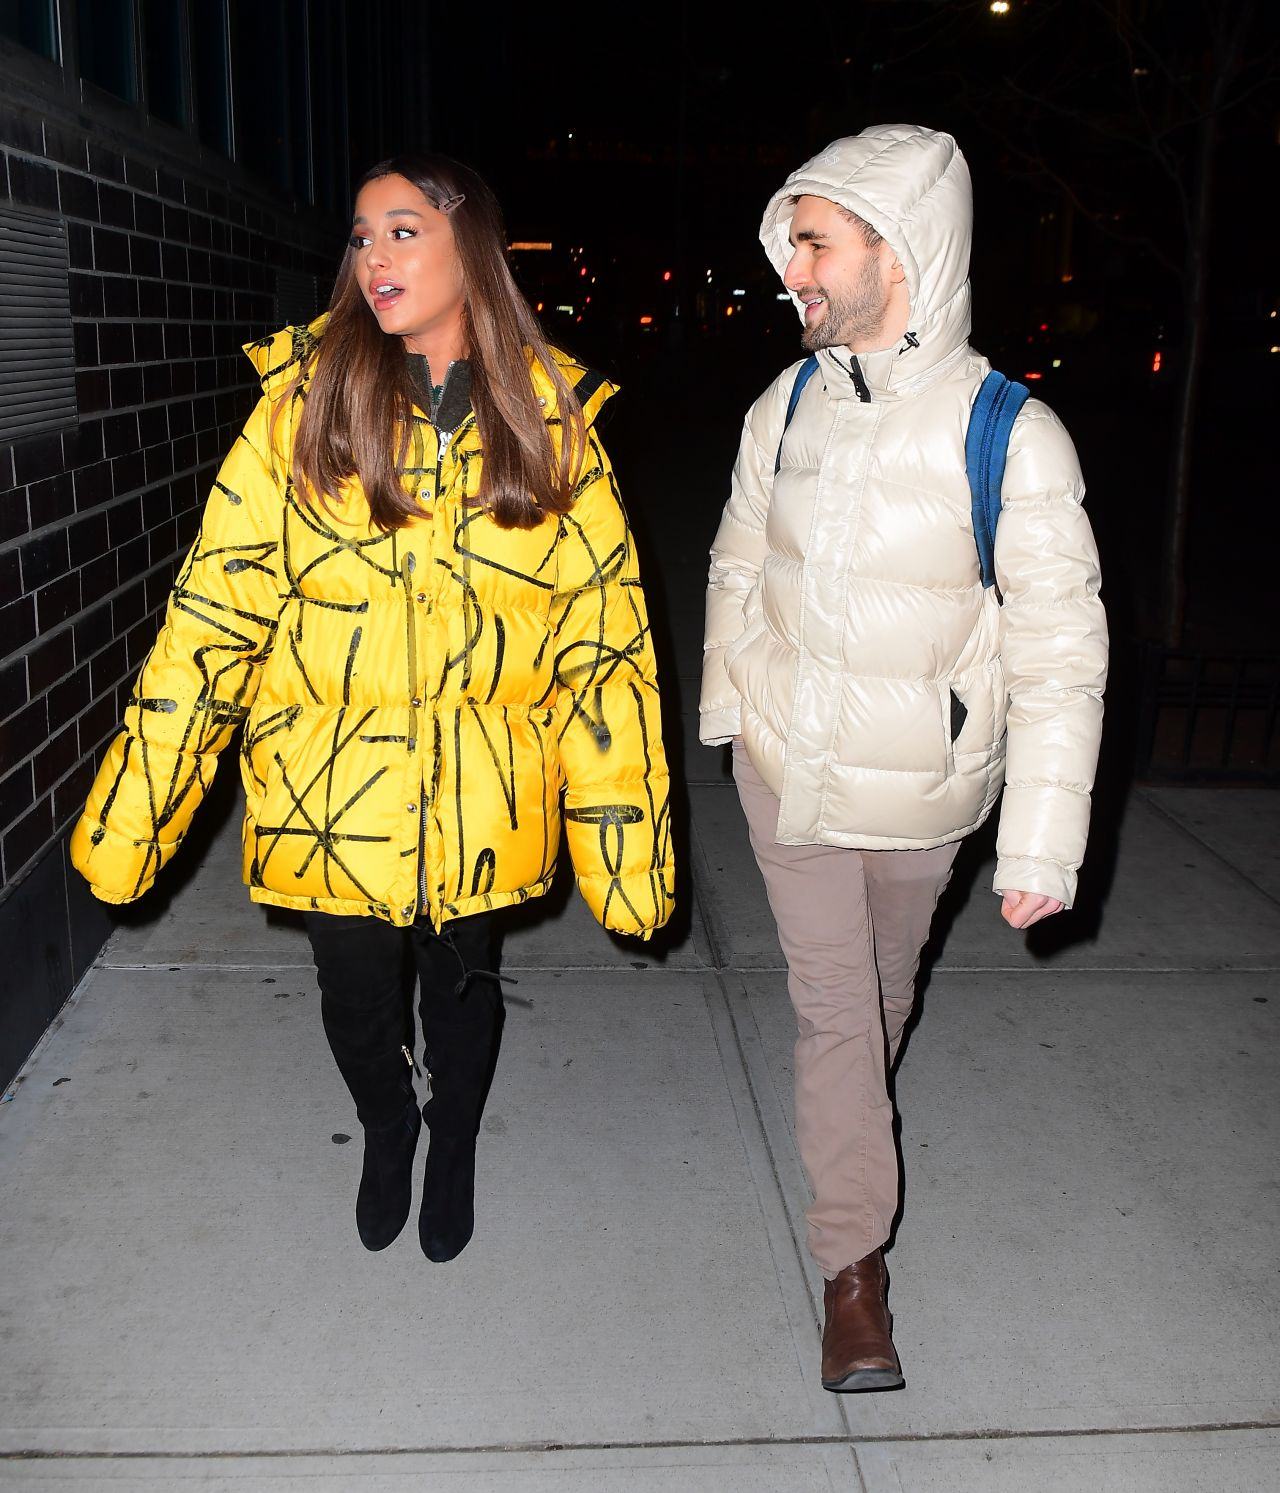 5959ef9d4 Ariana Grande in Oversized Yellow Puffer Jacket 12/11/2018